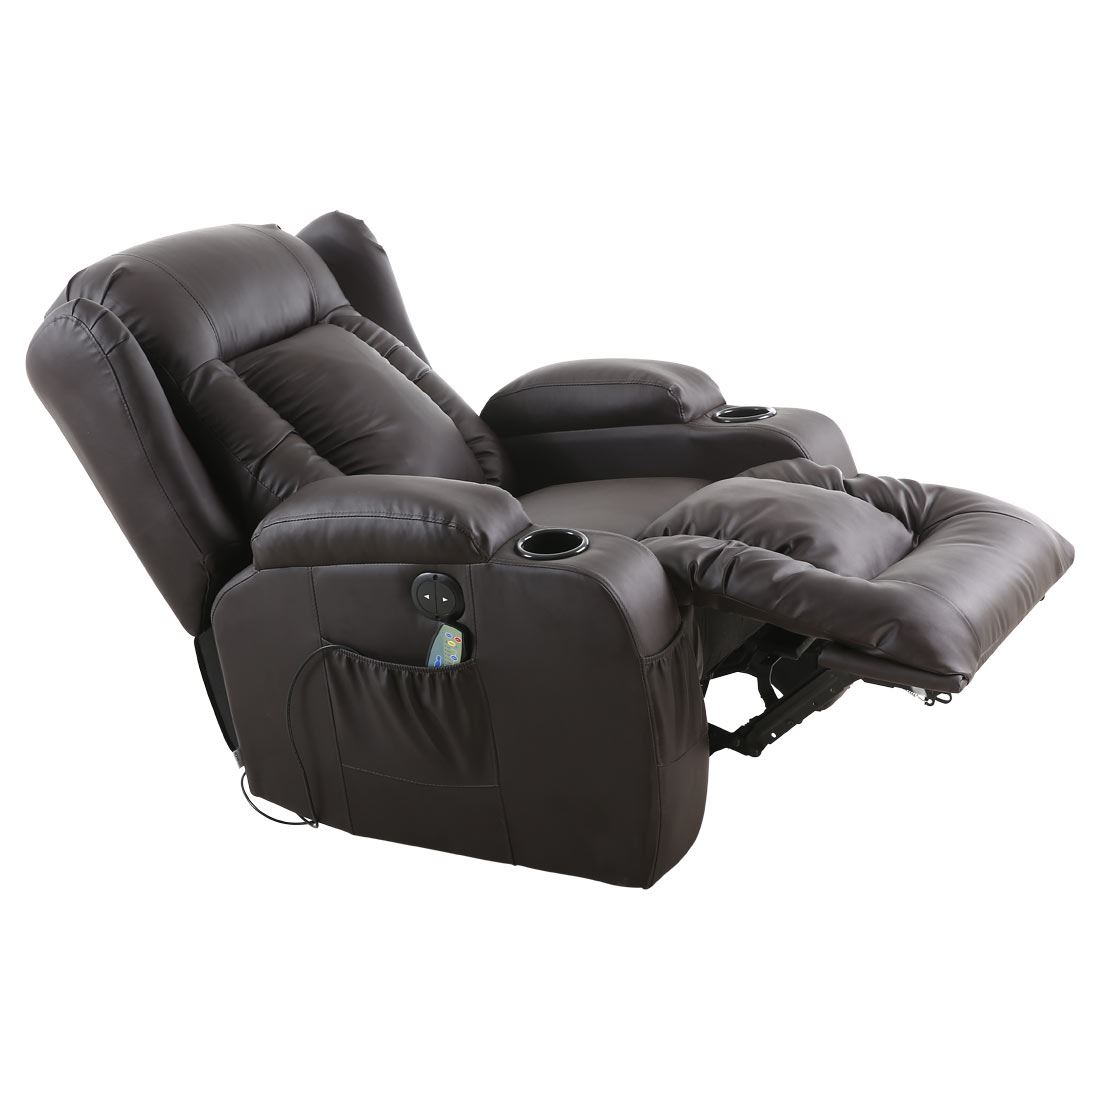 Massage Chair For Car Caesar Brown Electric Leather Auto Recliner Massage Heated